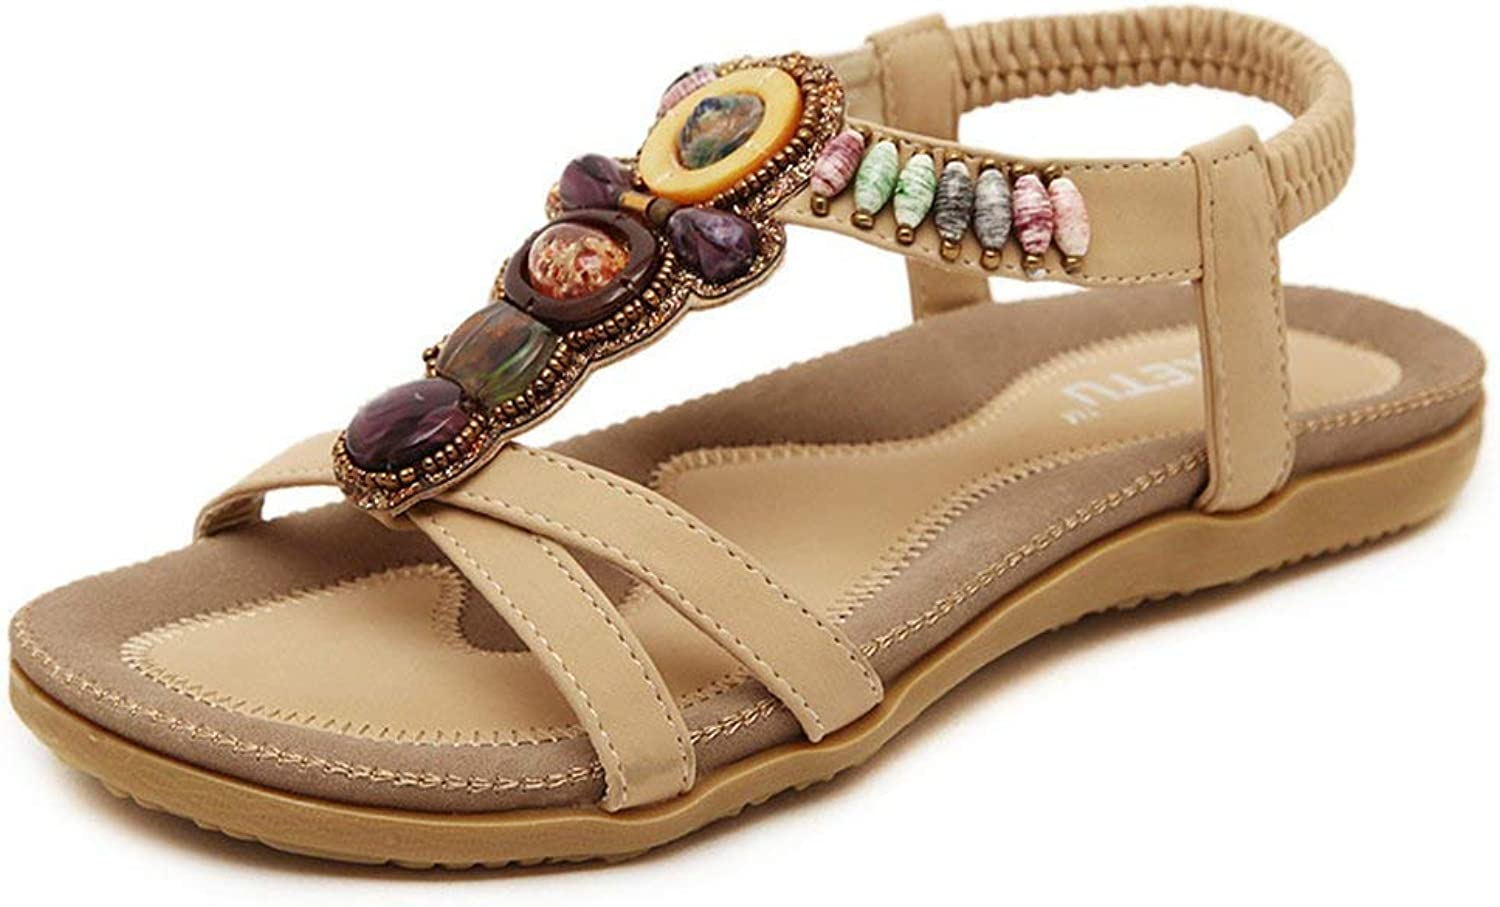 Gedigits Women's Bohemian Beaded Casual Beach Flats Elastic Ankle Strap Gladiator Sandals Beige 10 M US